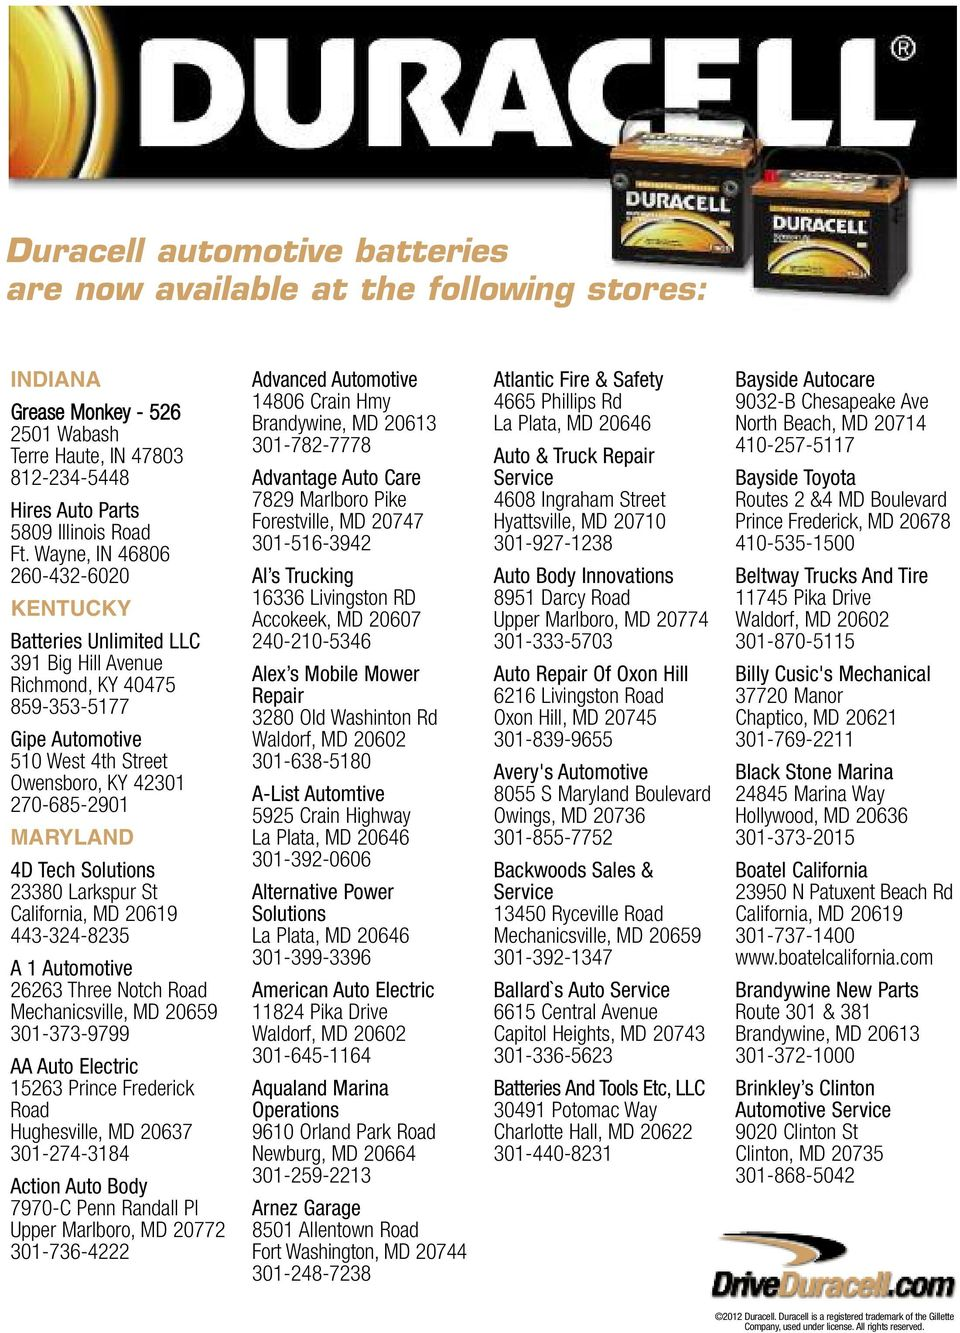 Duracell Automotive Batteries Are Now Available At The Following